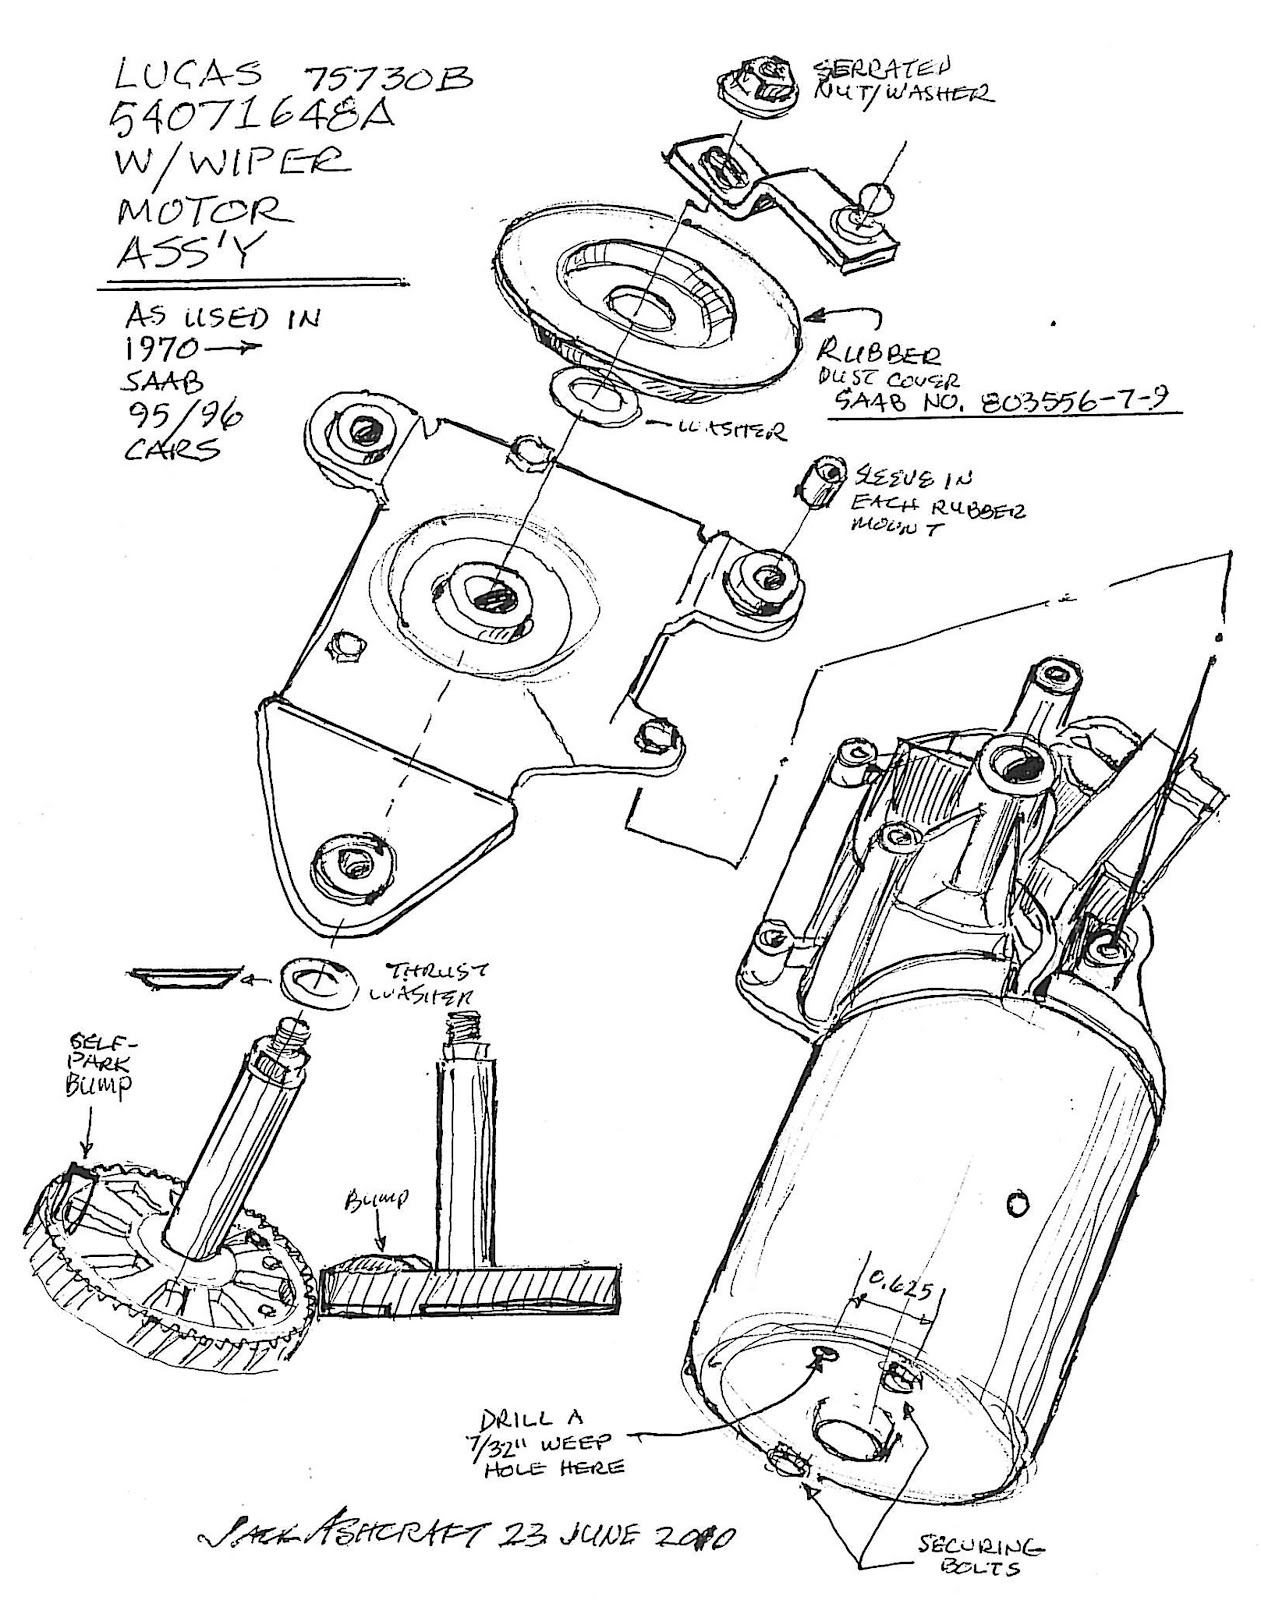 1957 chevy windshield wiper wiring diagram html